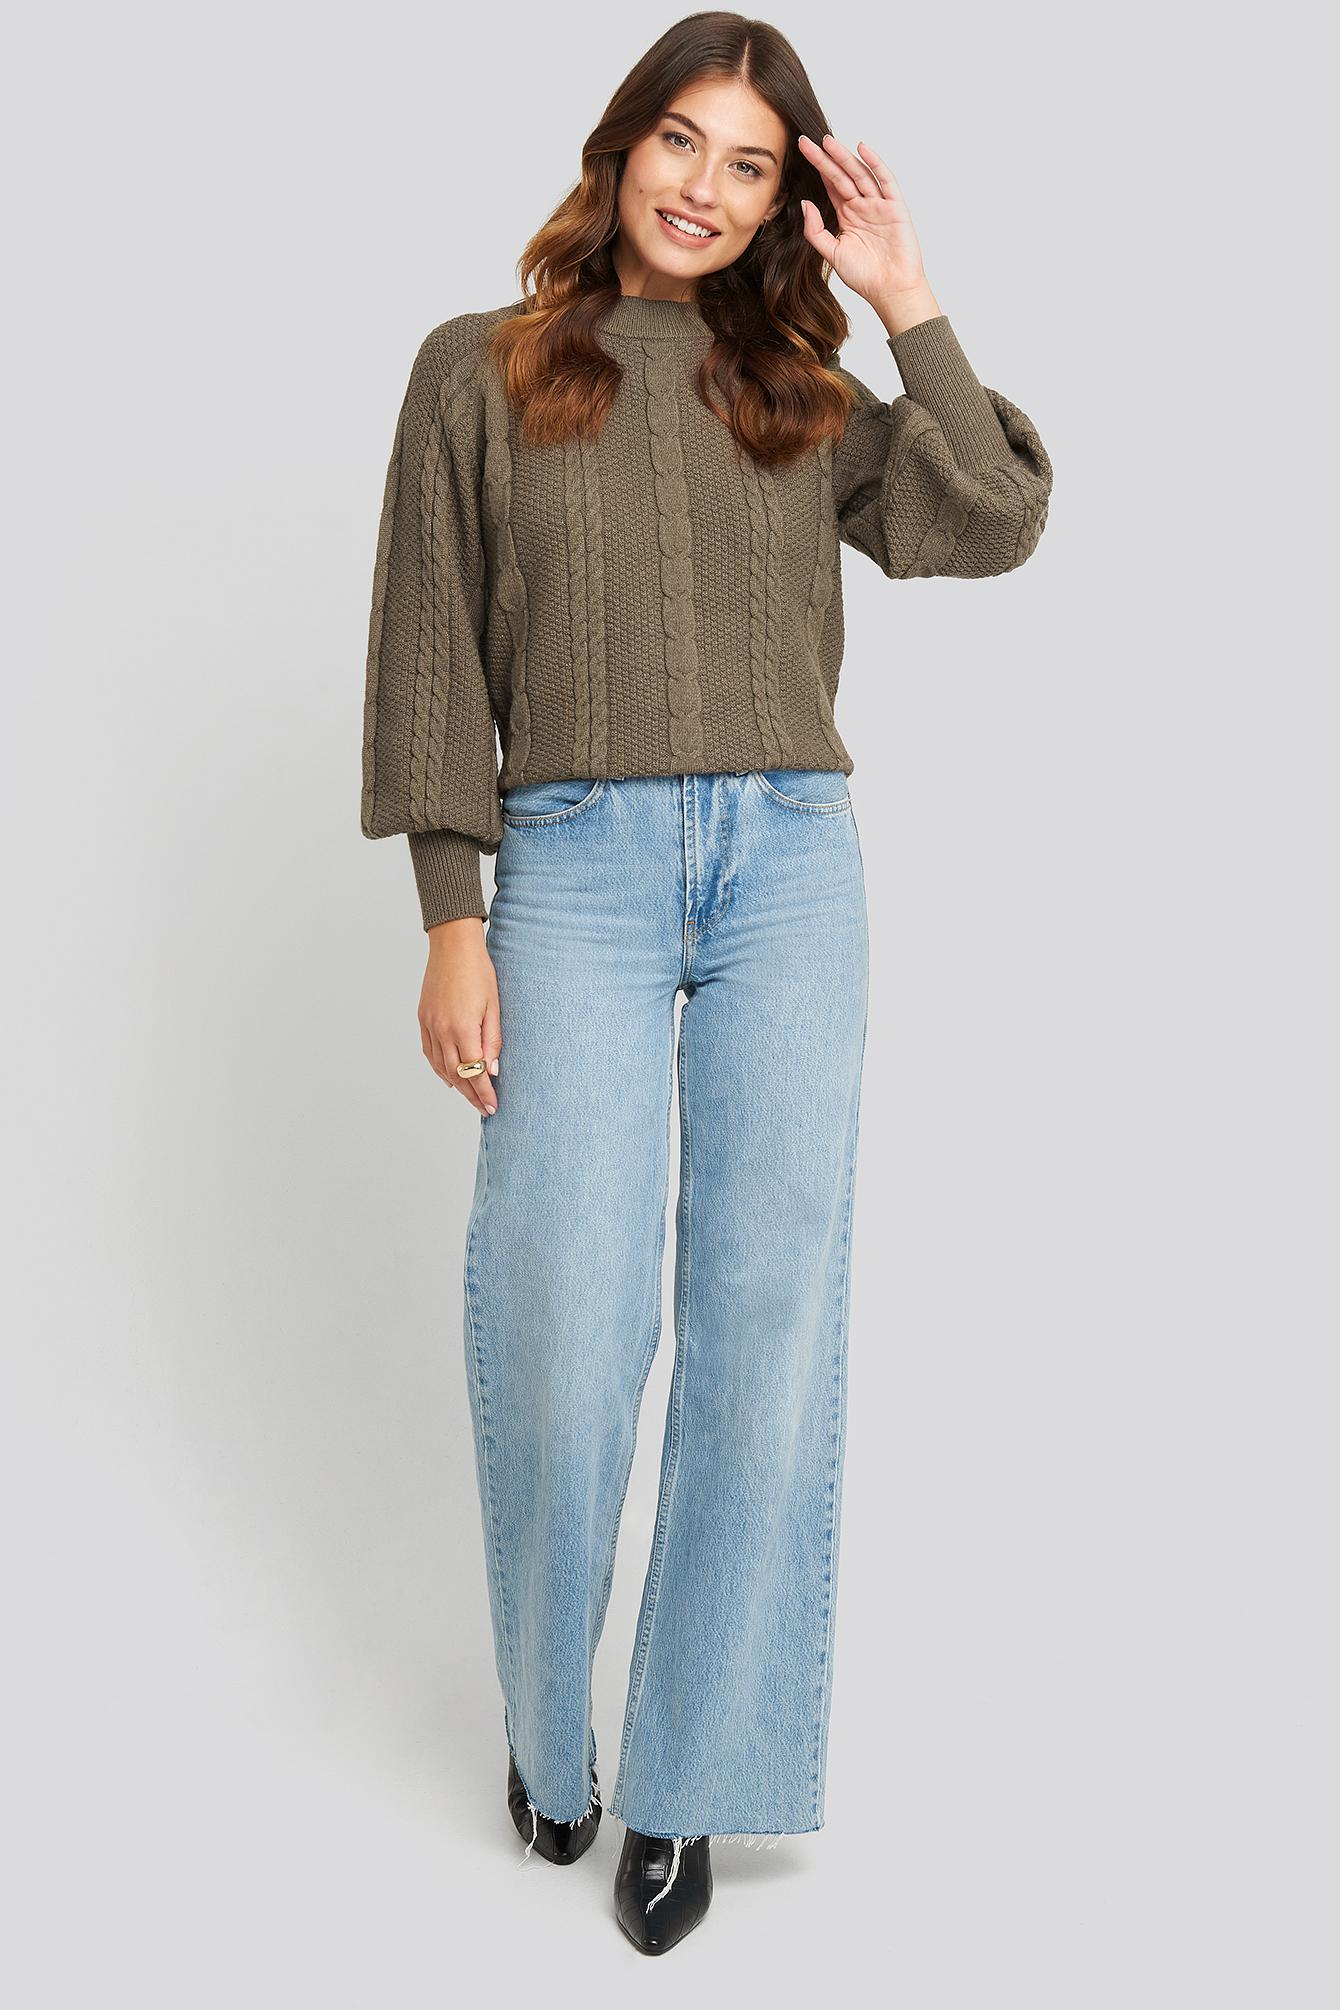 Balloon Sleeve Cable Knitted Sweater Synthétique NA-KD en coloris Marron